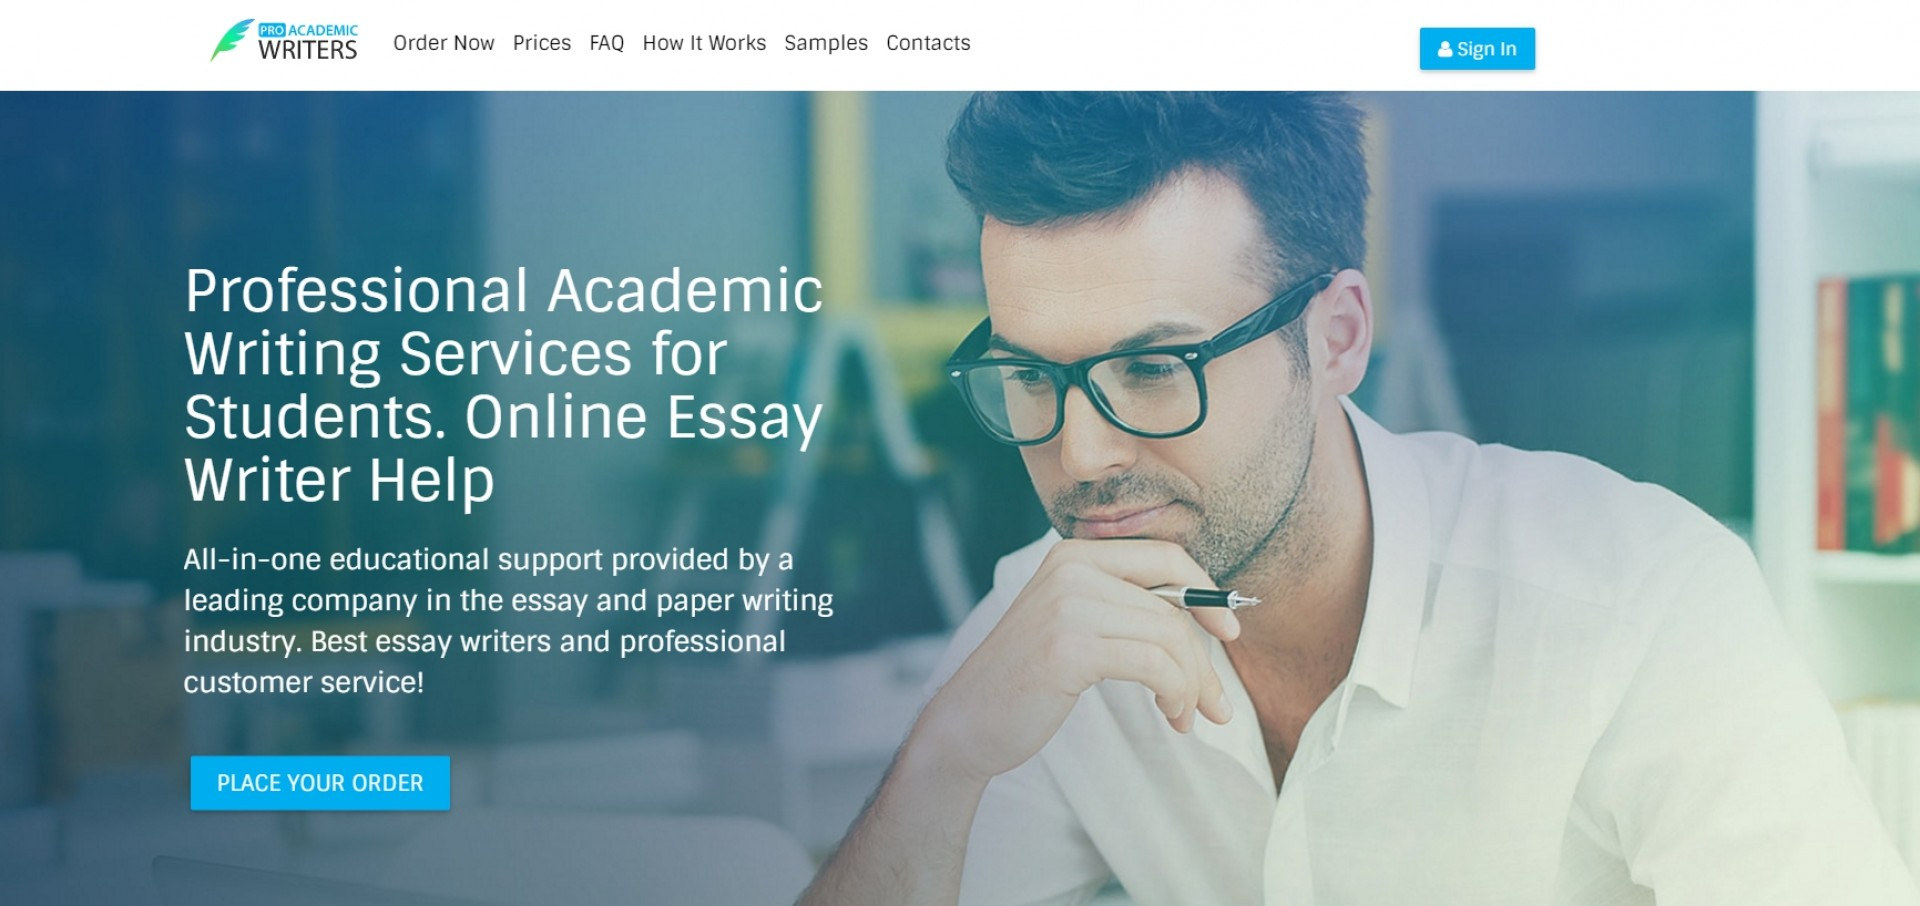 017 Pro Essay Writer Example Academic Sensational Discount Code 1920